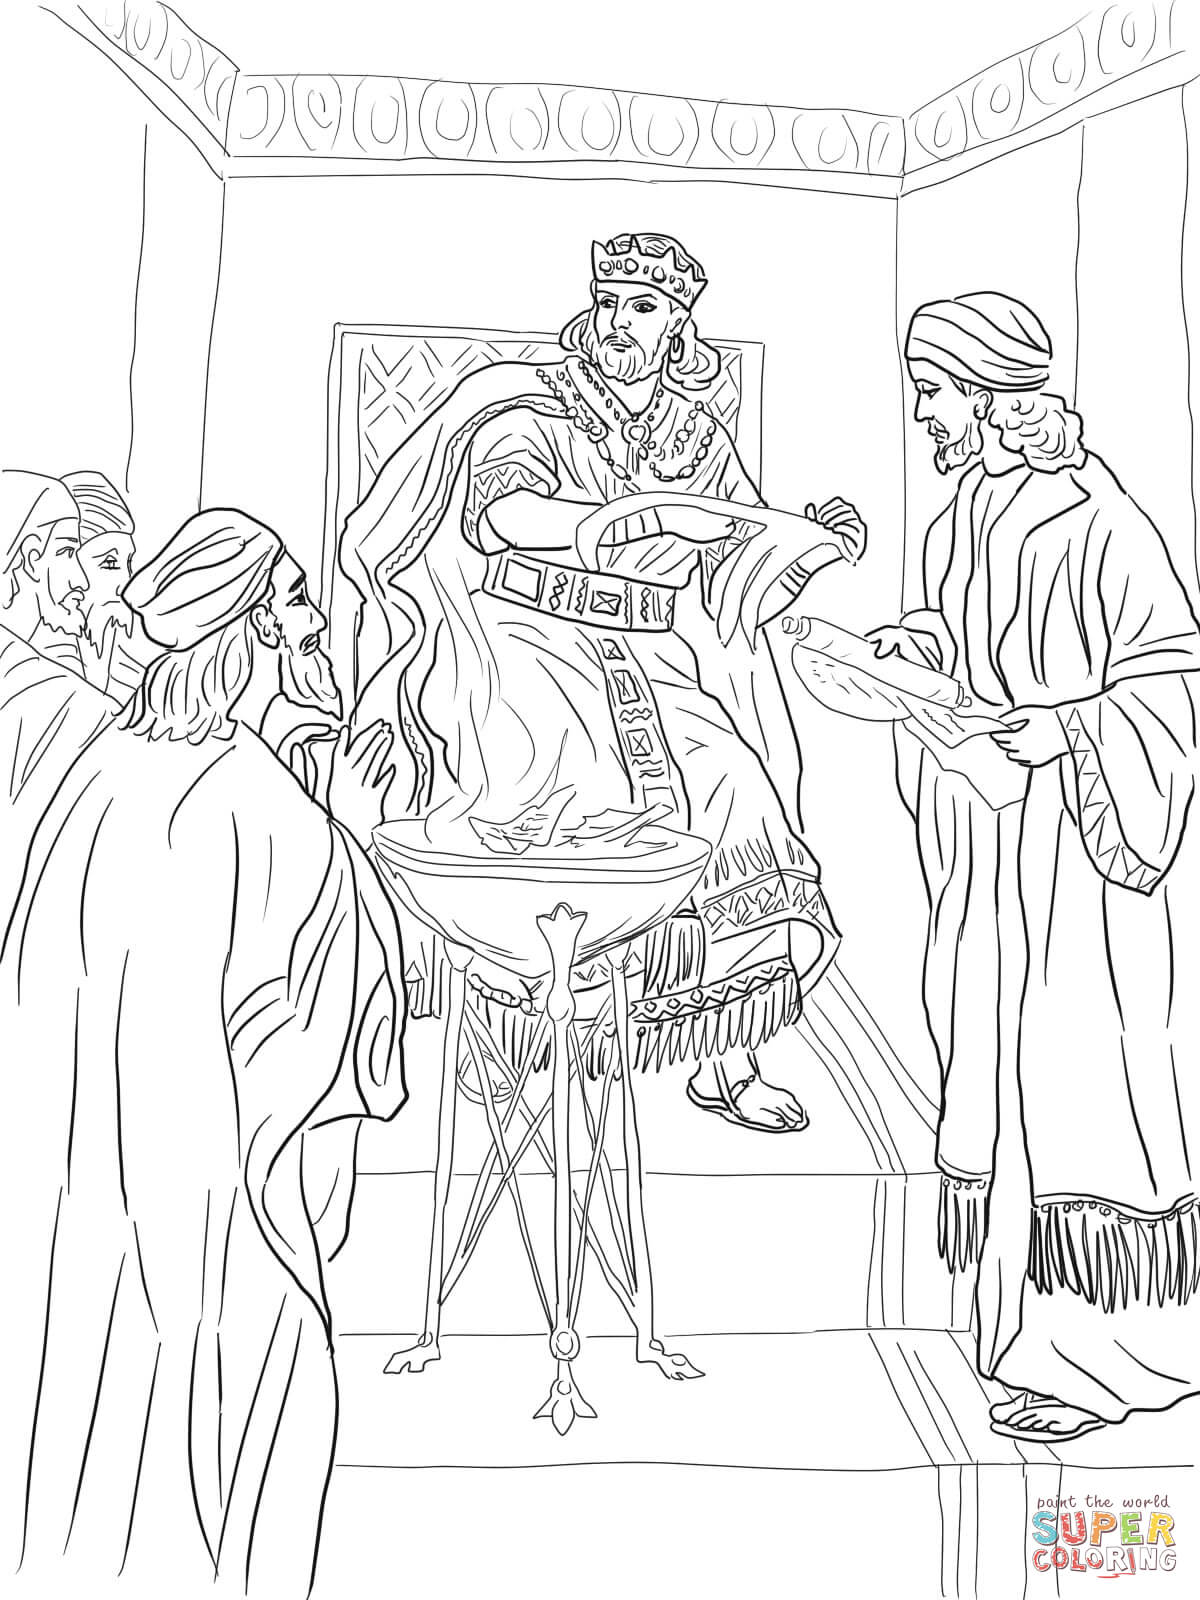 King Jehoiakim Burns Jeremiah's Scroll coloring page